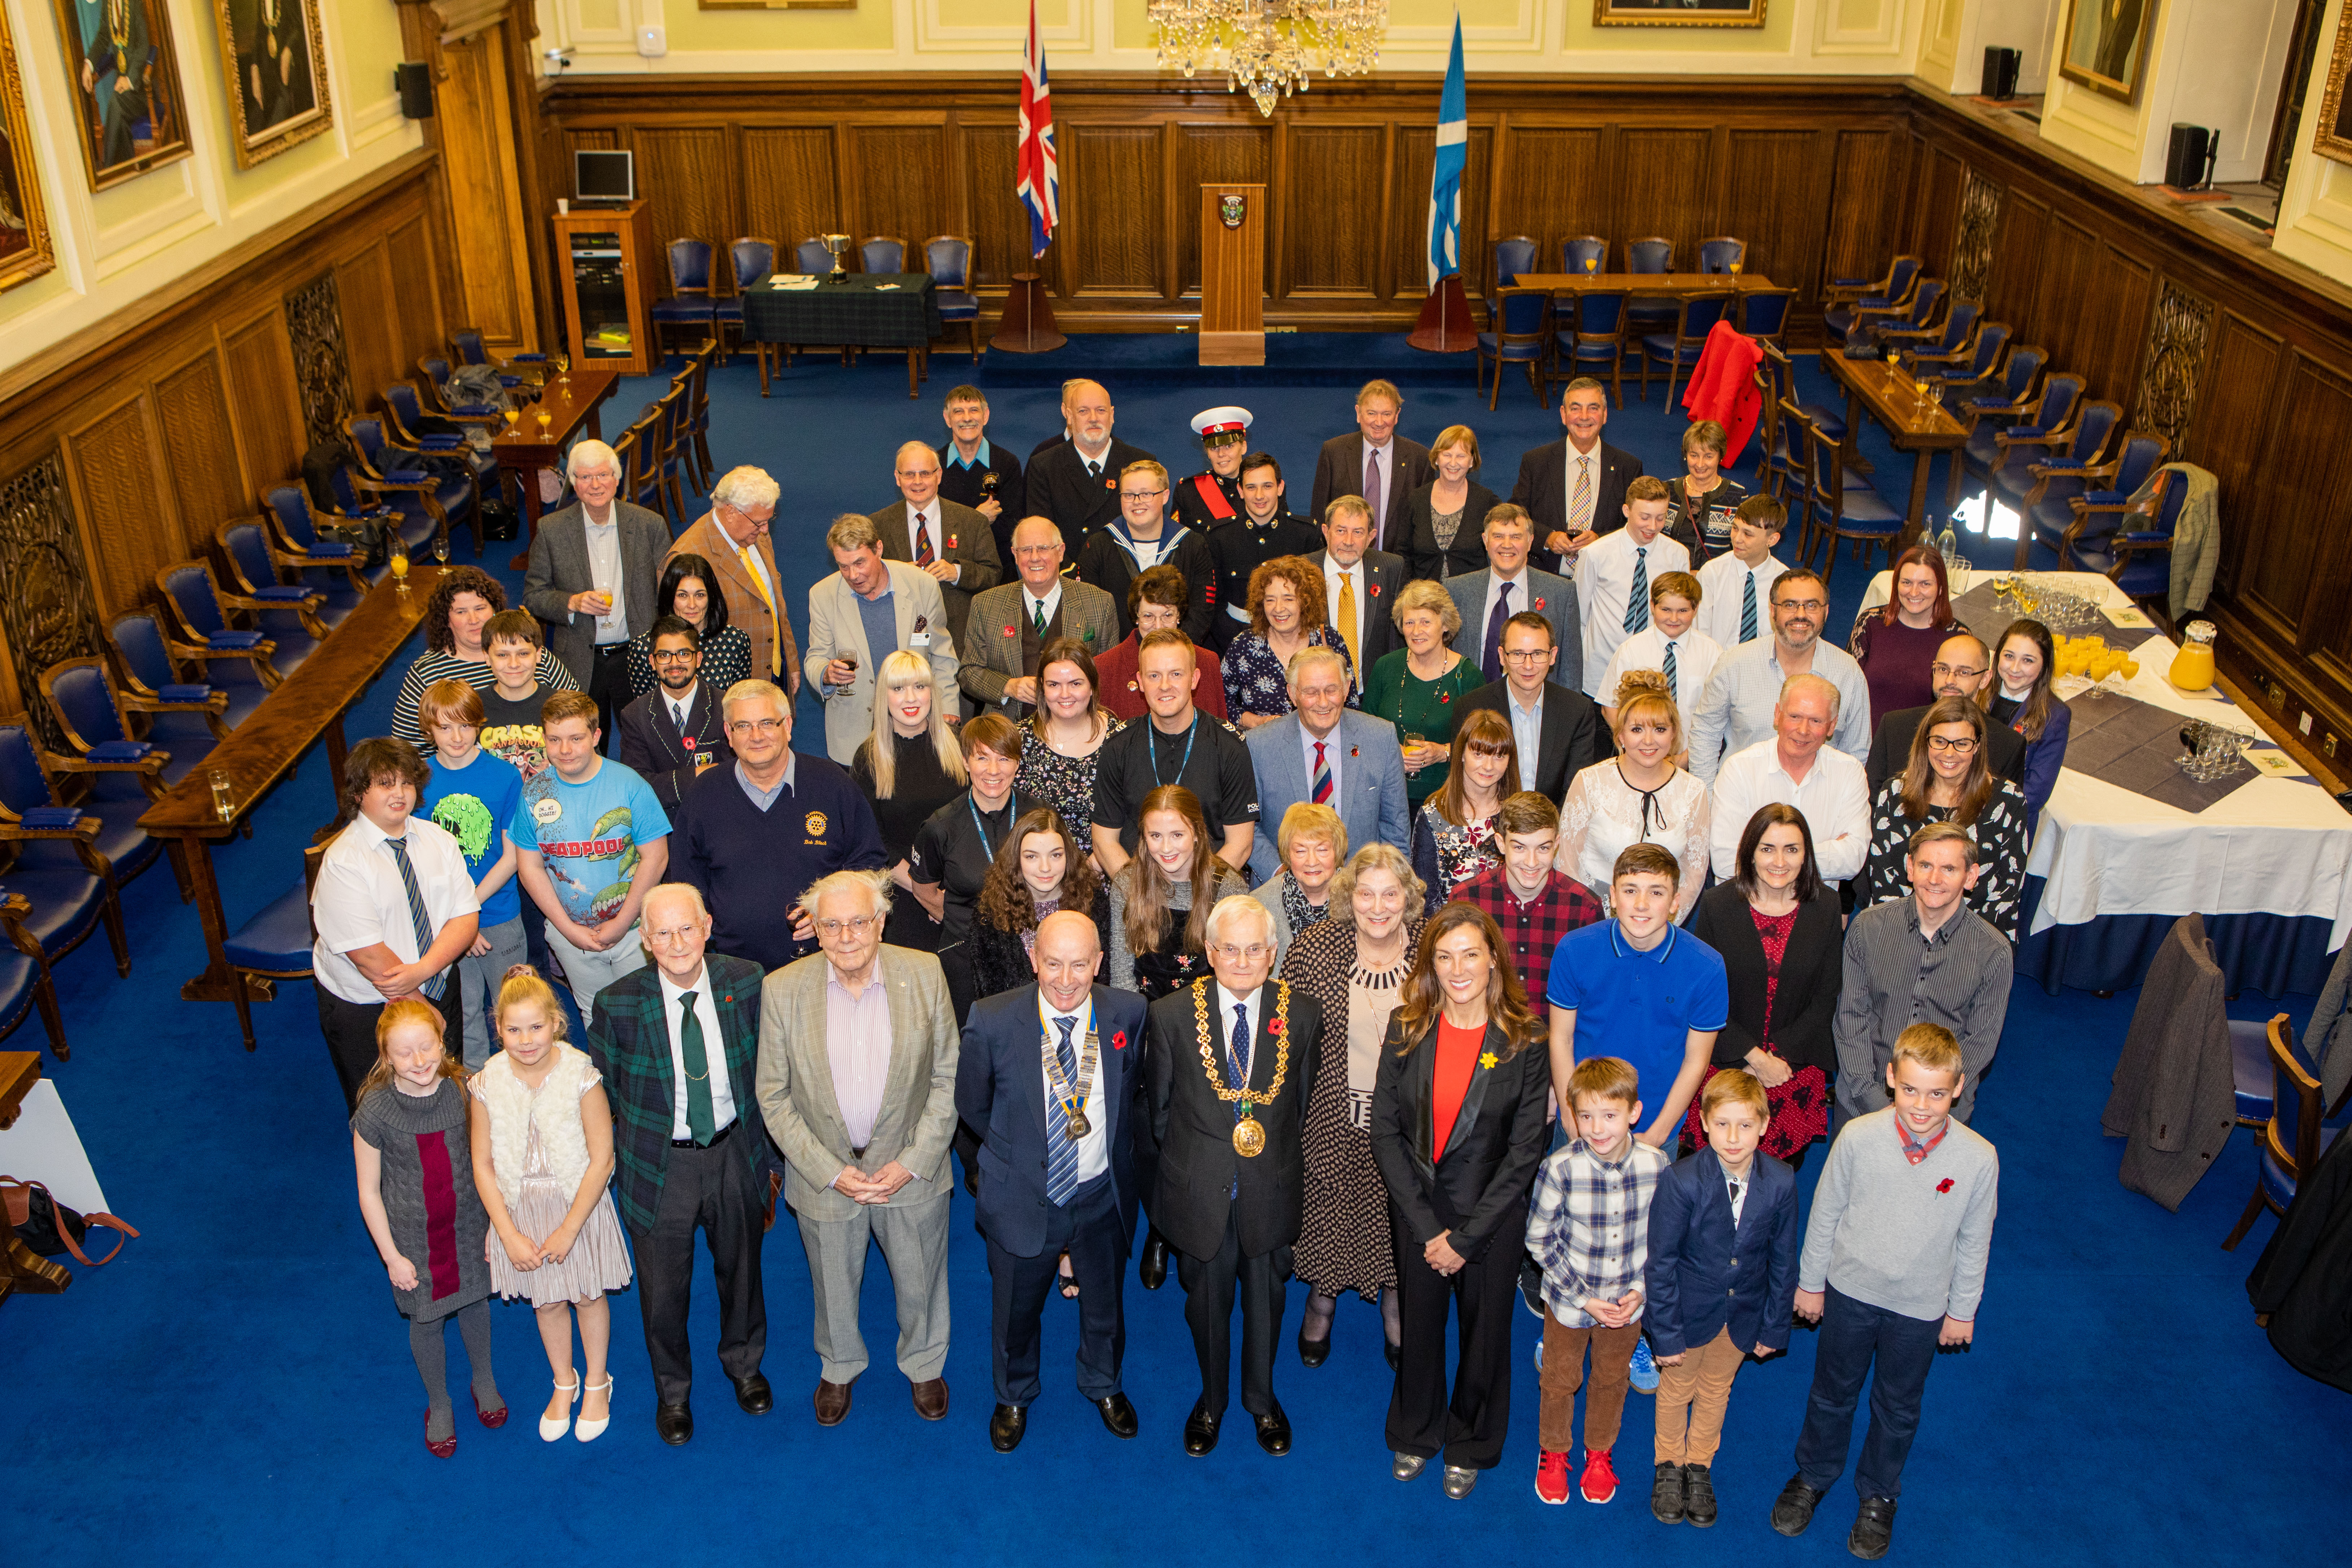 Lord Provost Ian Borthwick alongside members of Claverhouse Rotary Club and Marie Curie Patron Petra McMillan at City Chambers